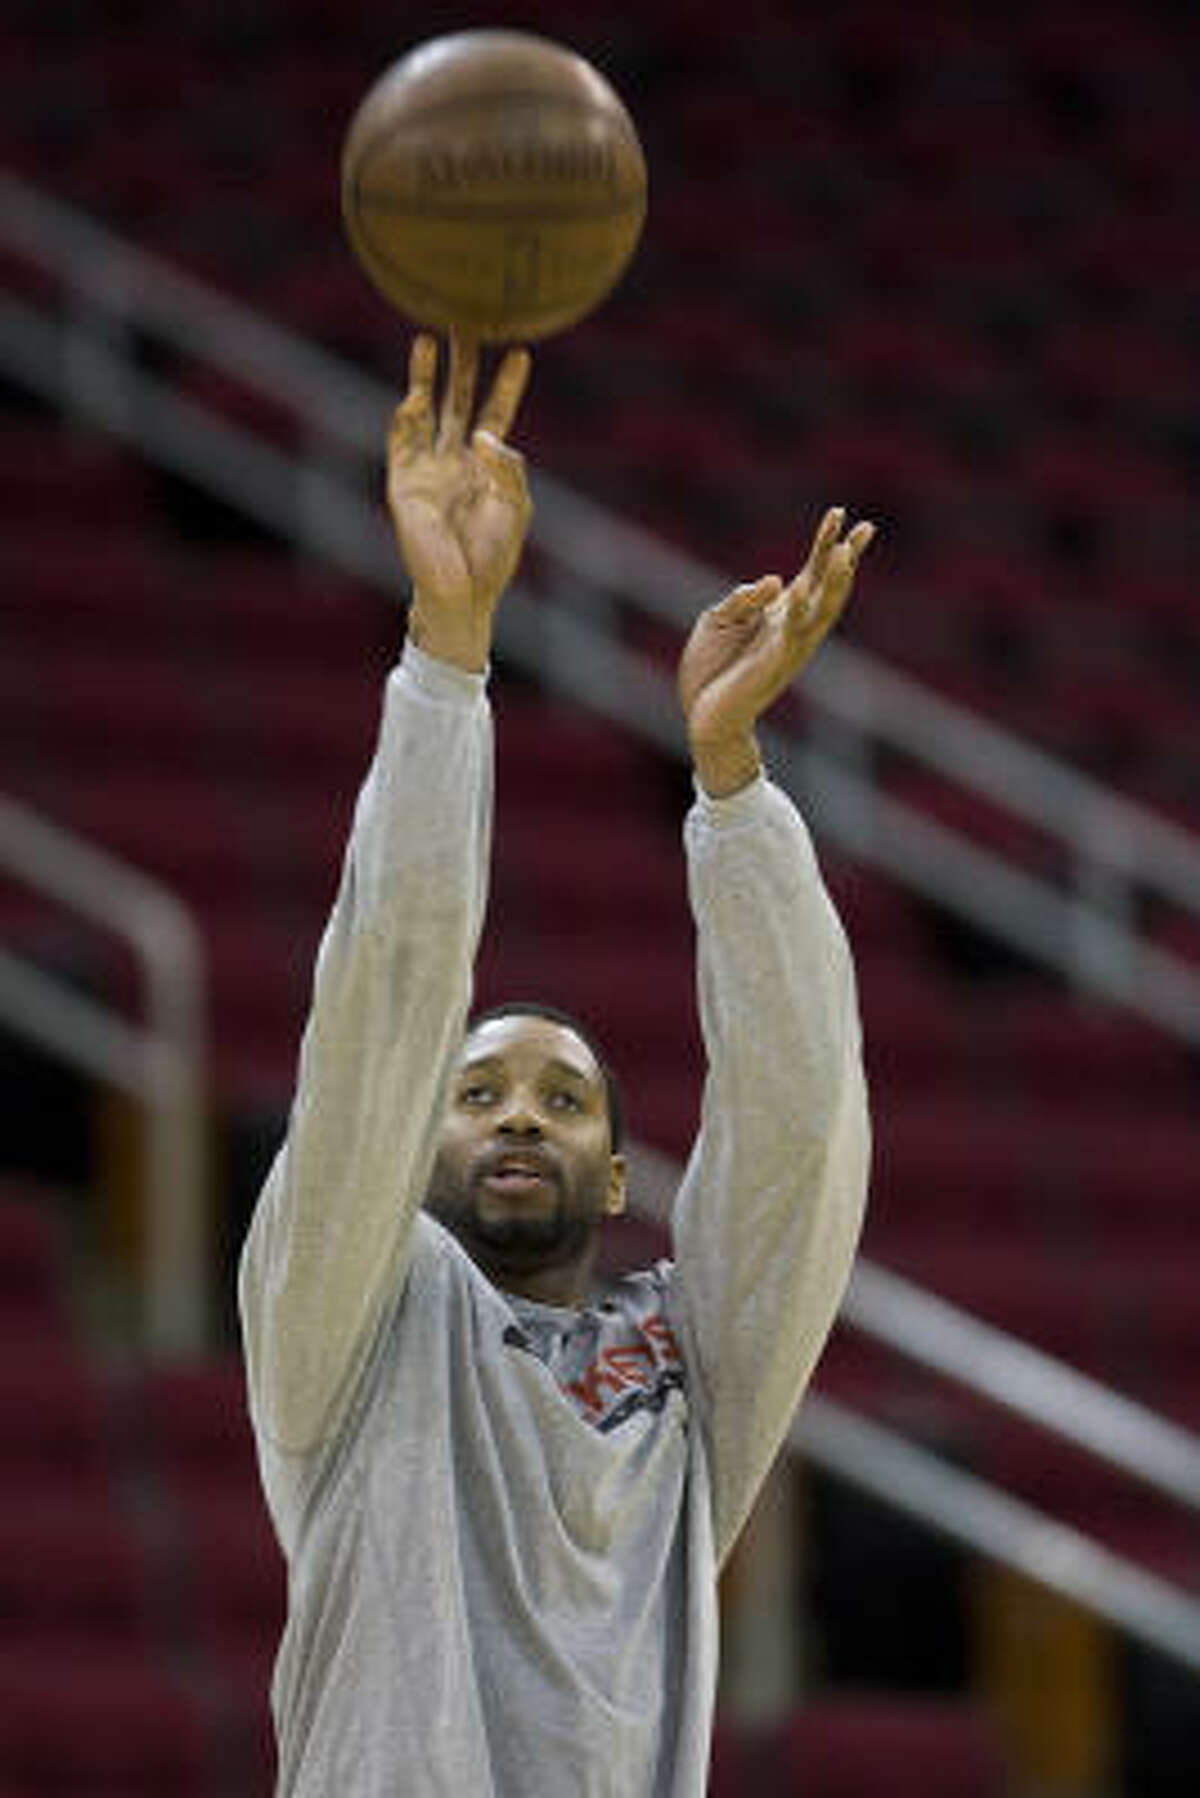 If Tracy McGrady returns now, the Rockets will be allowing one individual to set the agenda, Richard Justice writes.